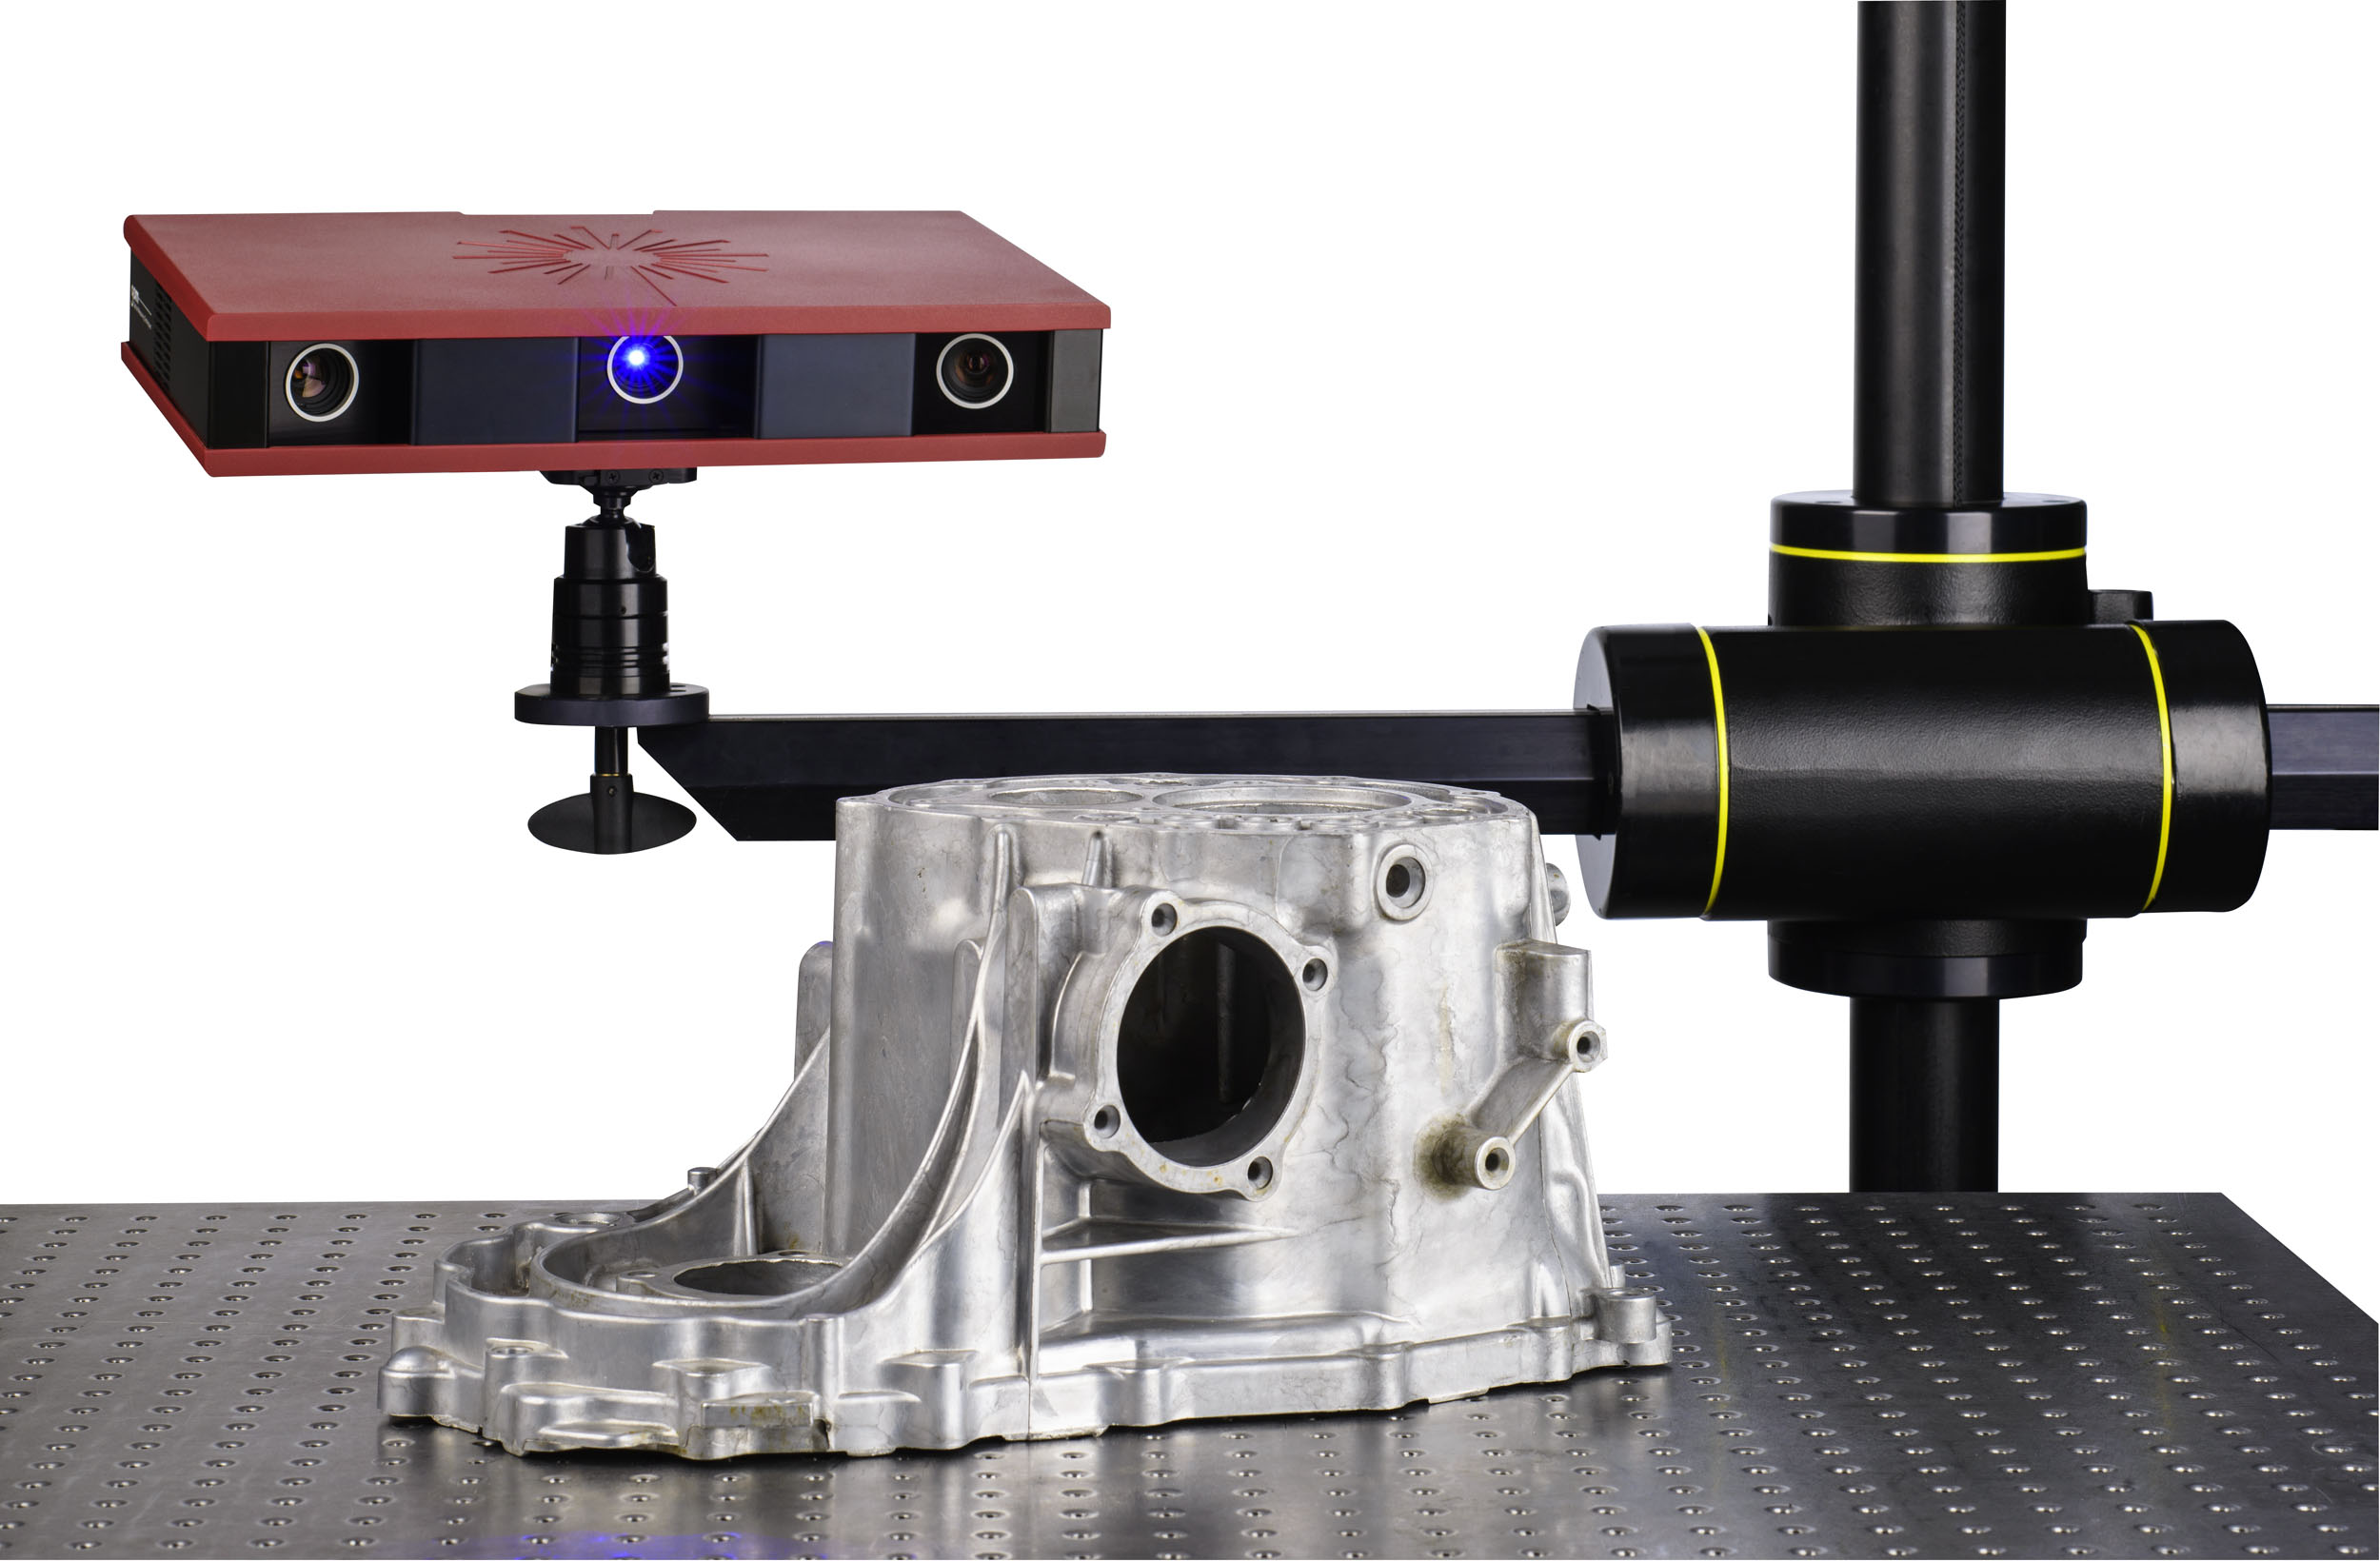 GOM's new milestones in optical metrology